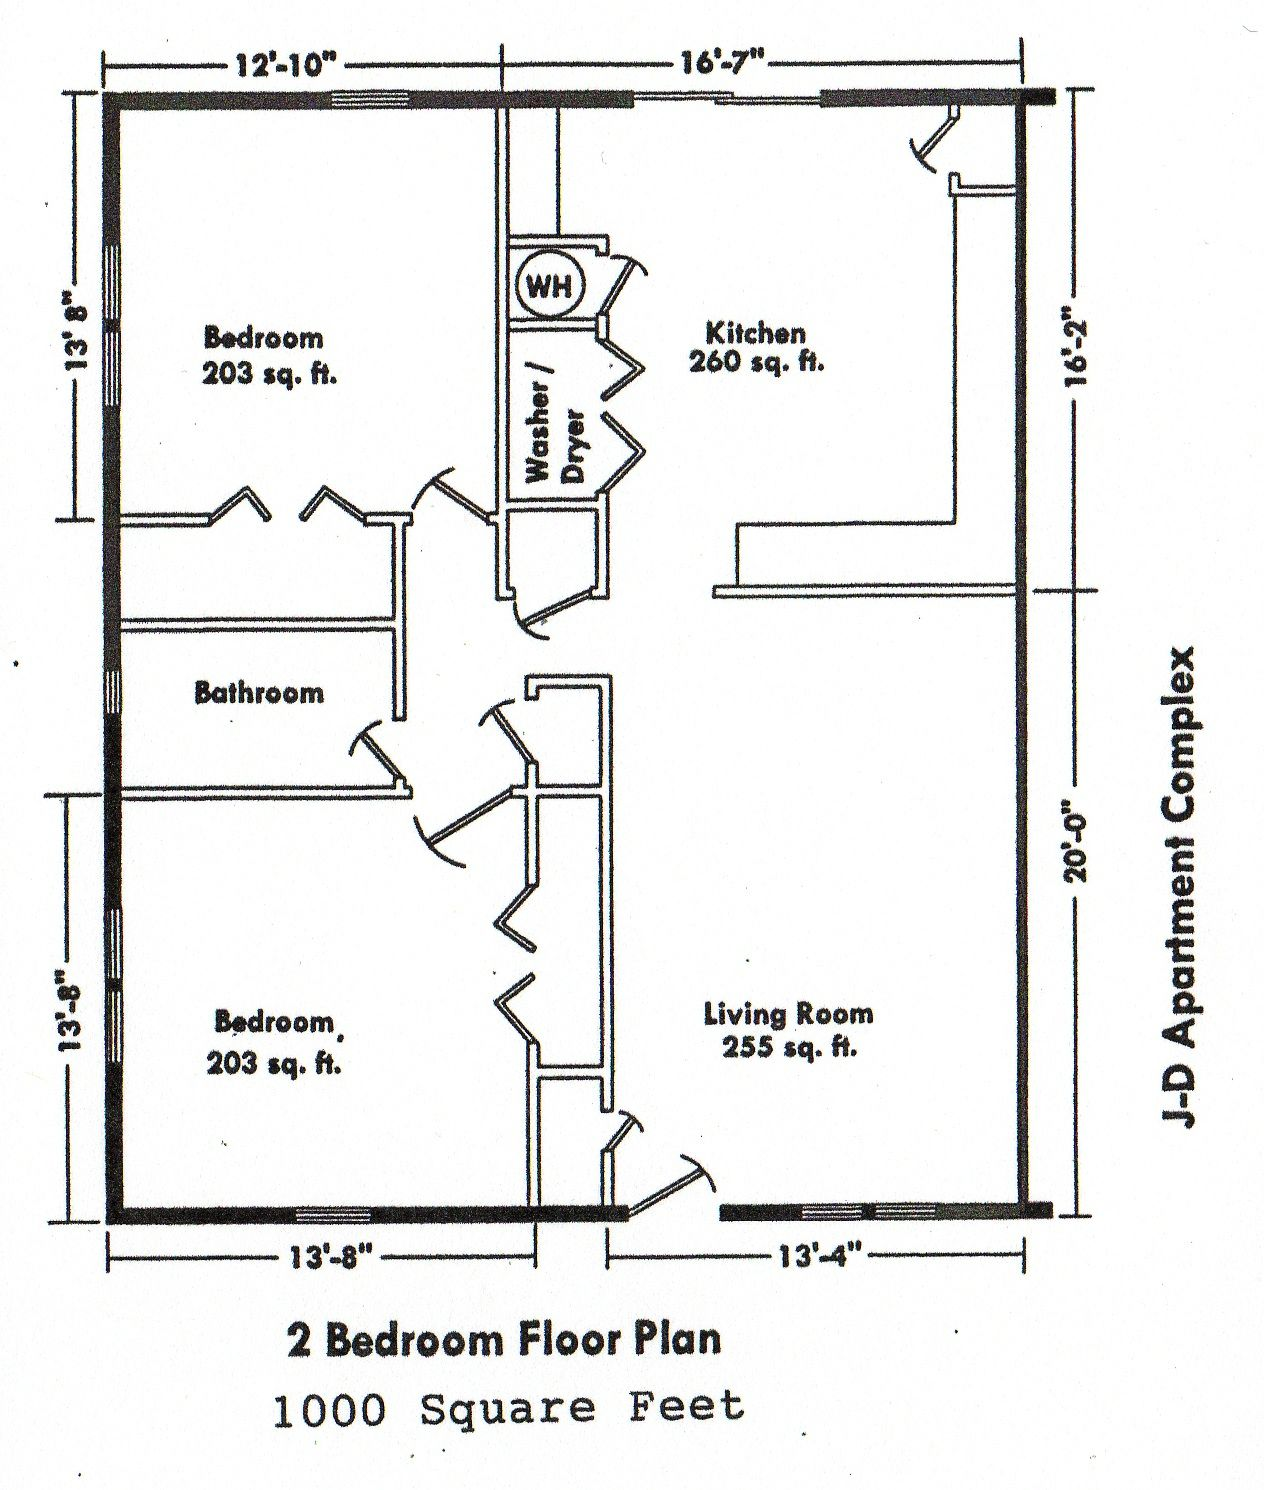 Small house floor plans 2 bedrooms master bedroom suite for House addition plans